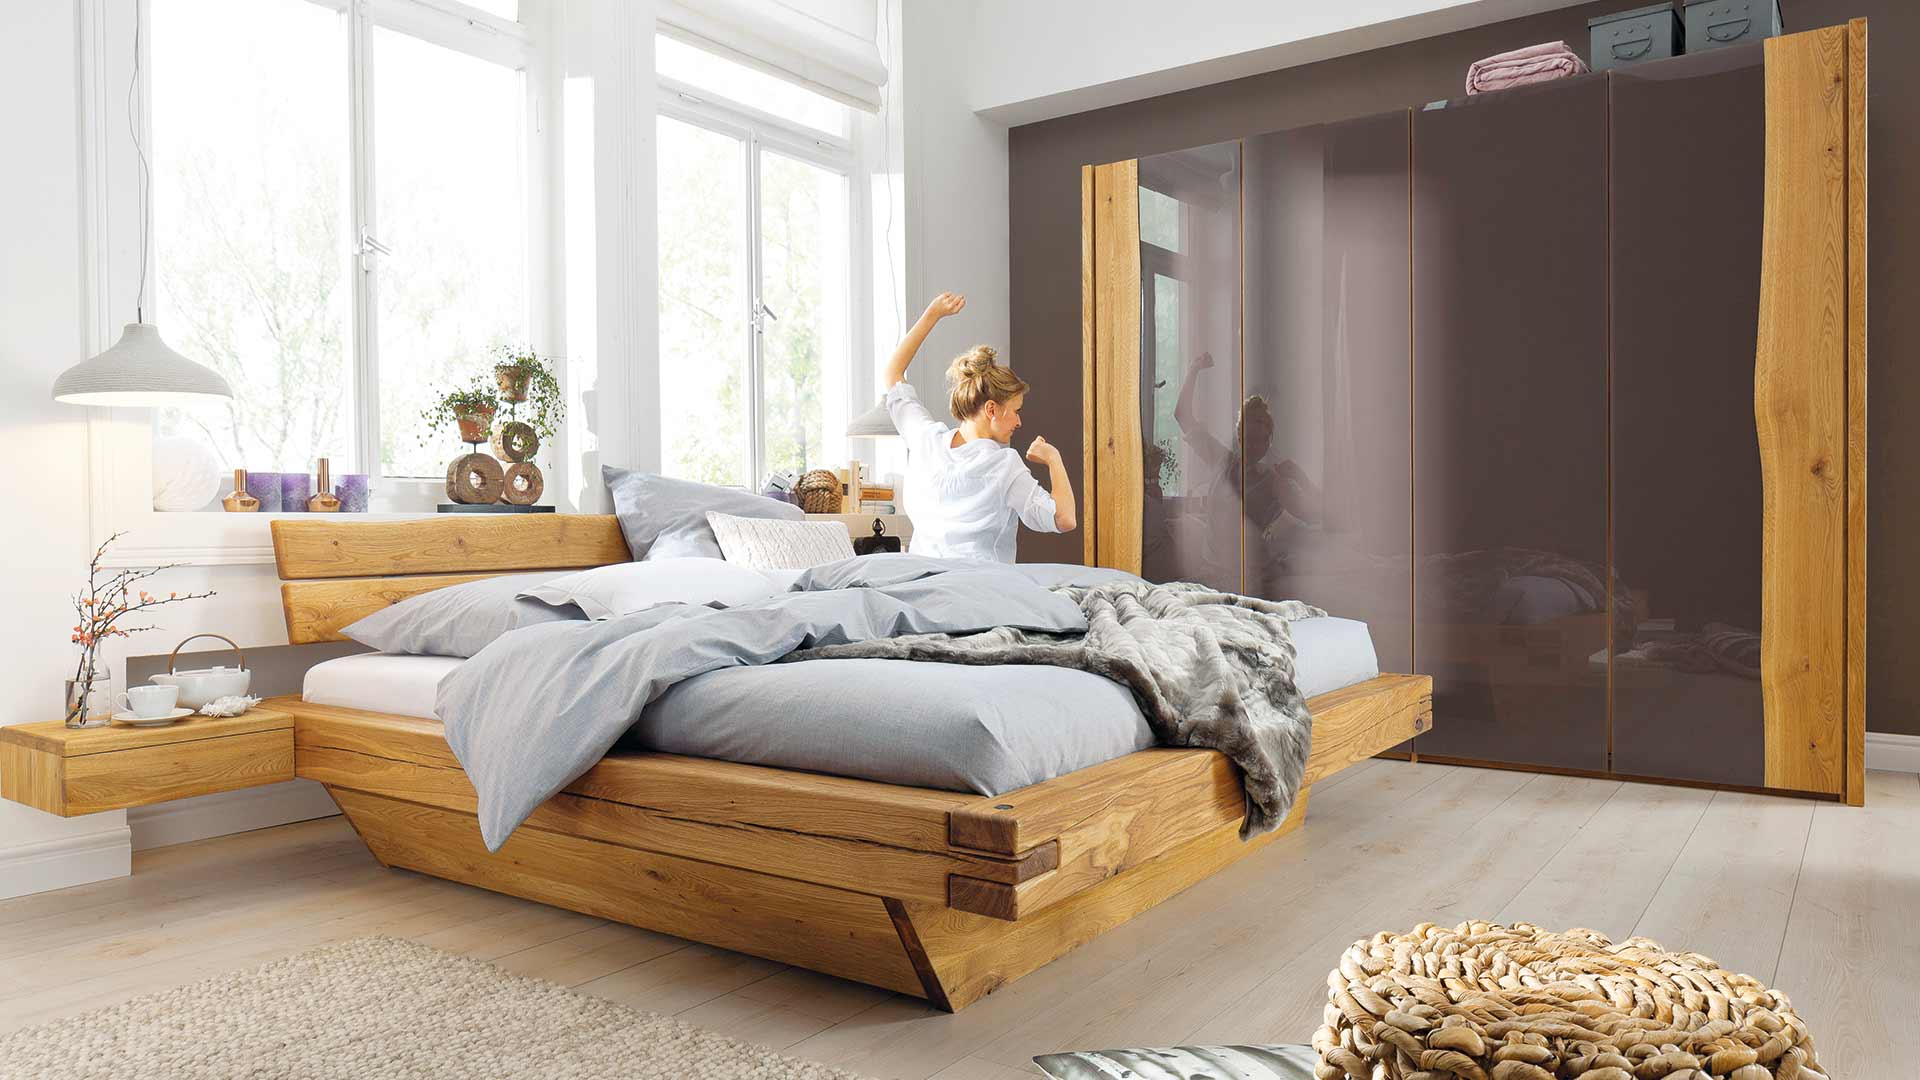 natura 1990 von natura einrichten in garbsen nahe hannover m bel hesse bestechende vielfalt. Black Bedroom Furniture Sets. Home Design Ideas